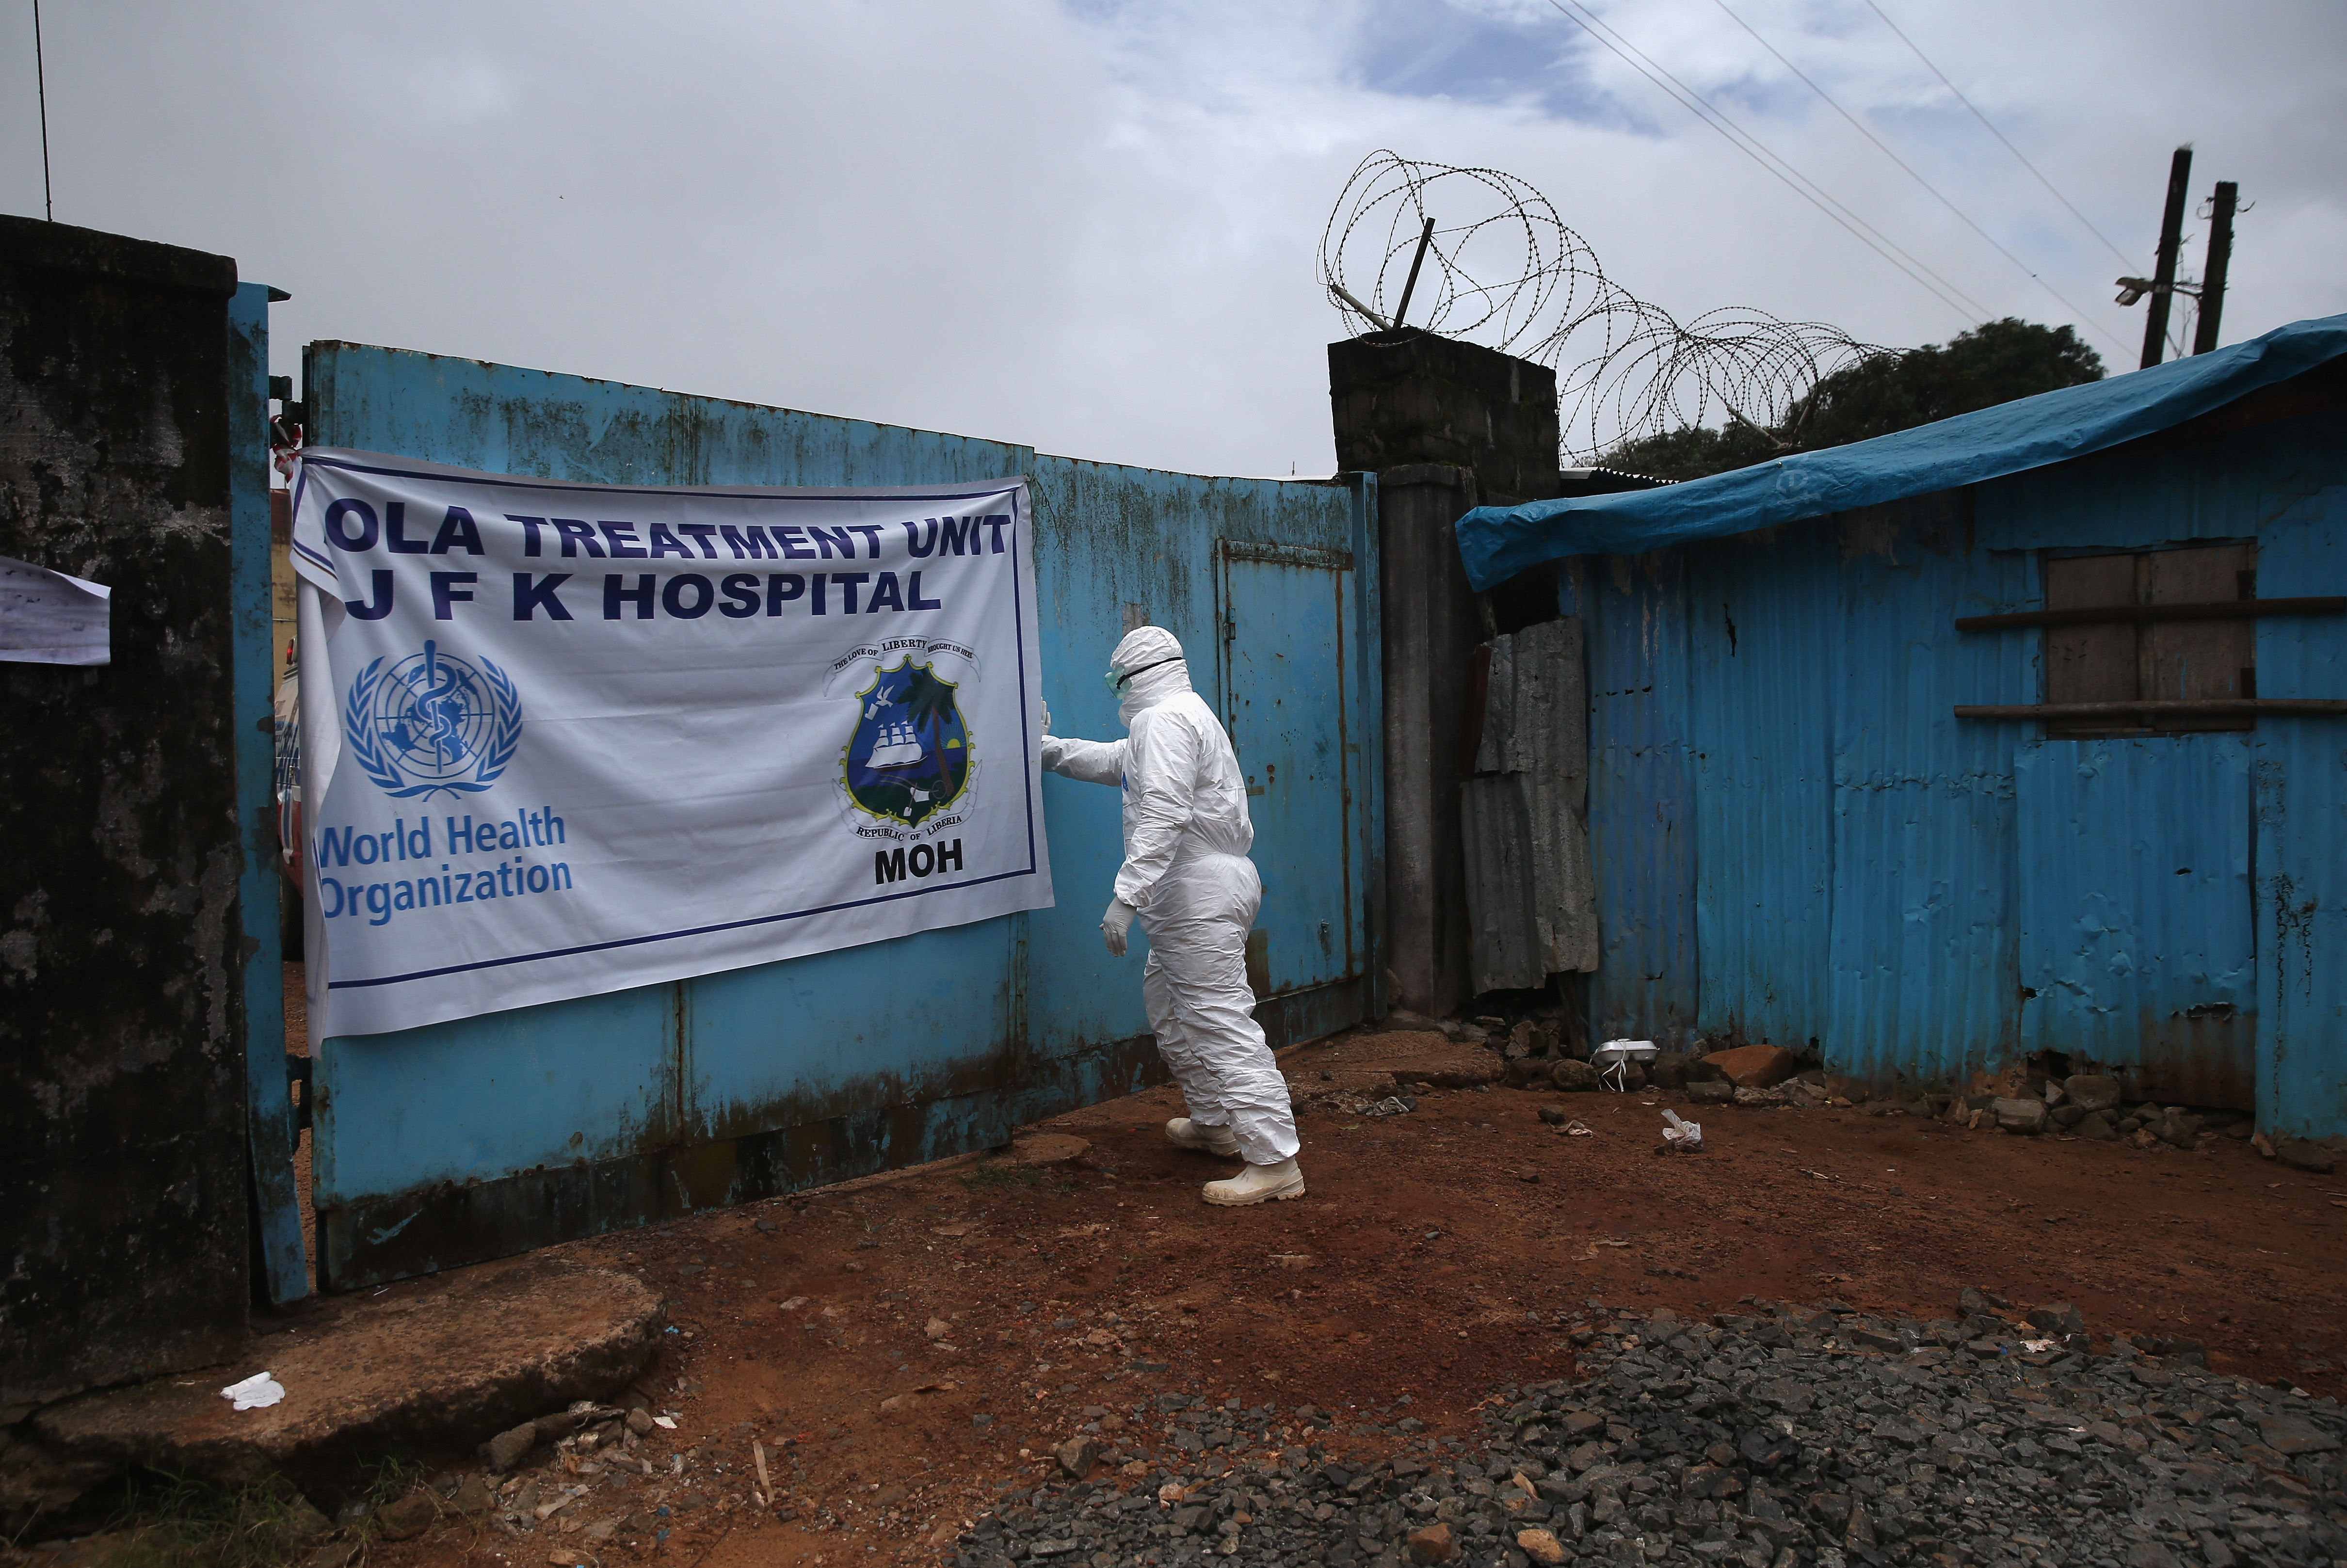 A member of a burial team prepares to collect Ebola victims from a treatment center on October 2, 2014, in Monrovia, Liberia.